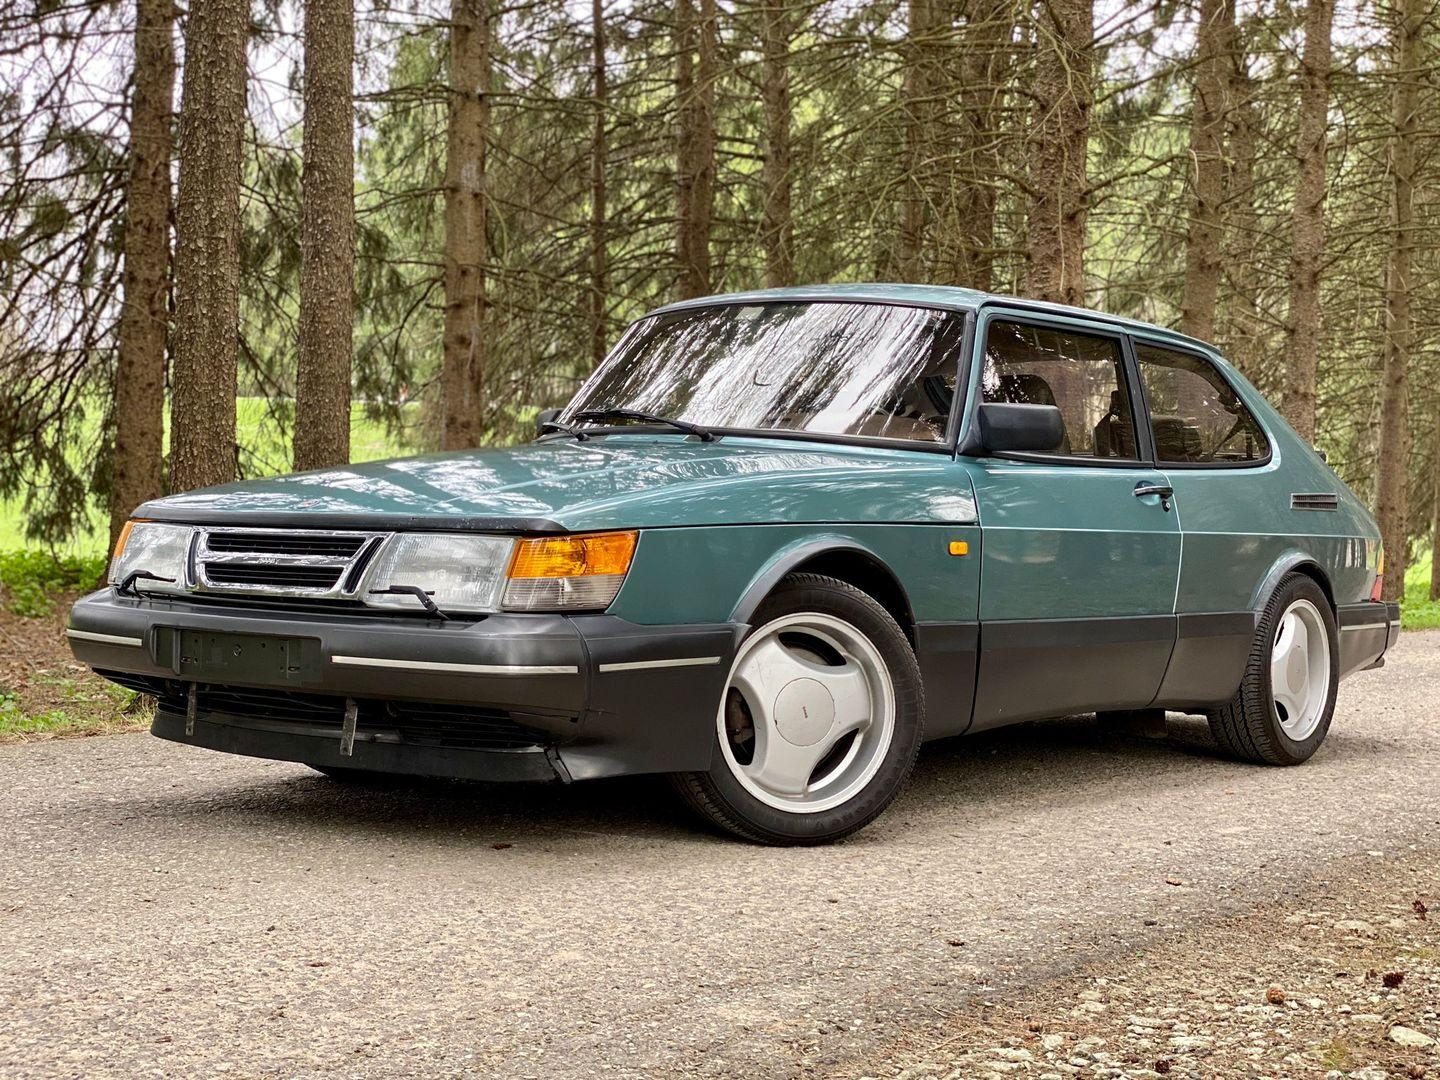 Saab 900 Turbo SPG Beryl Green